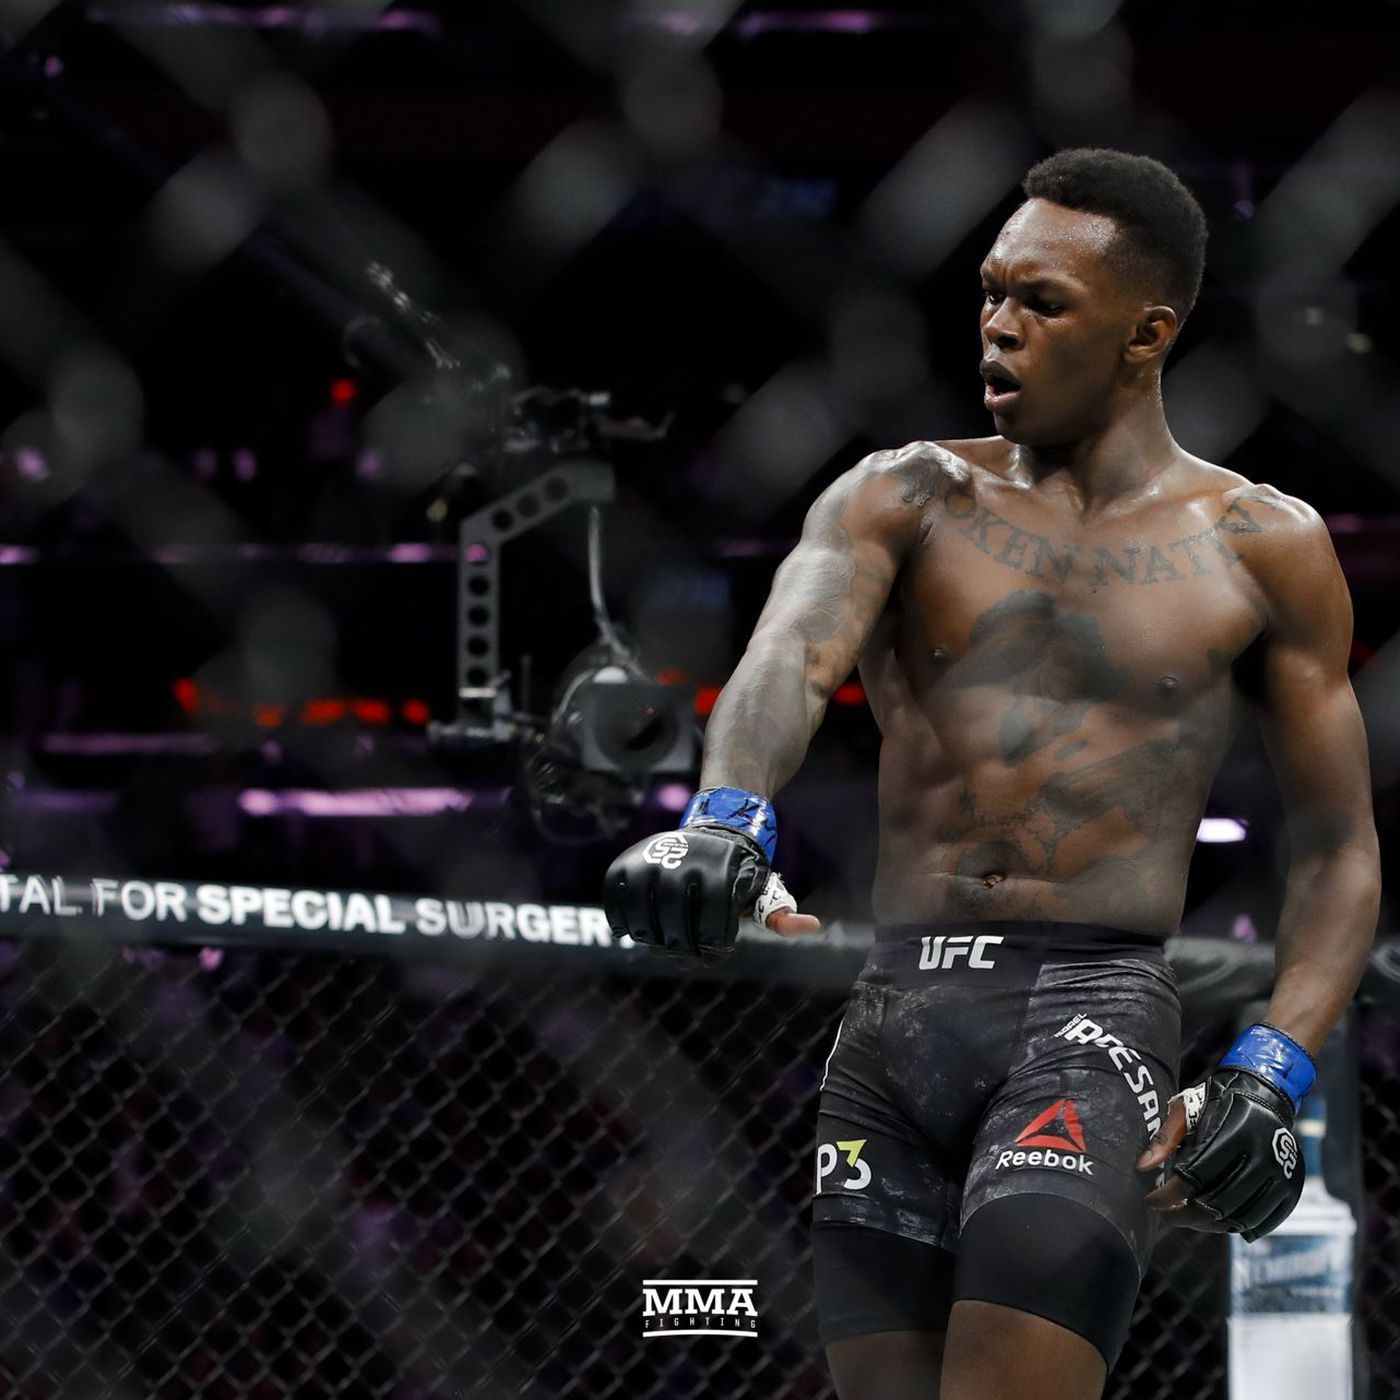 Get Great Anime Wallpaper Iphone Your Name In 2020 Israel Adesanya Ufc Ufc Fighters